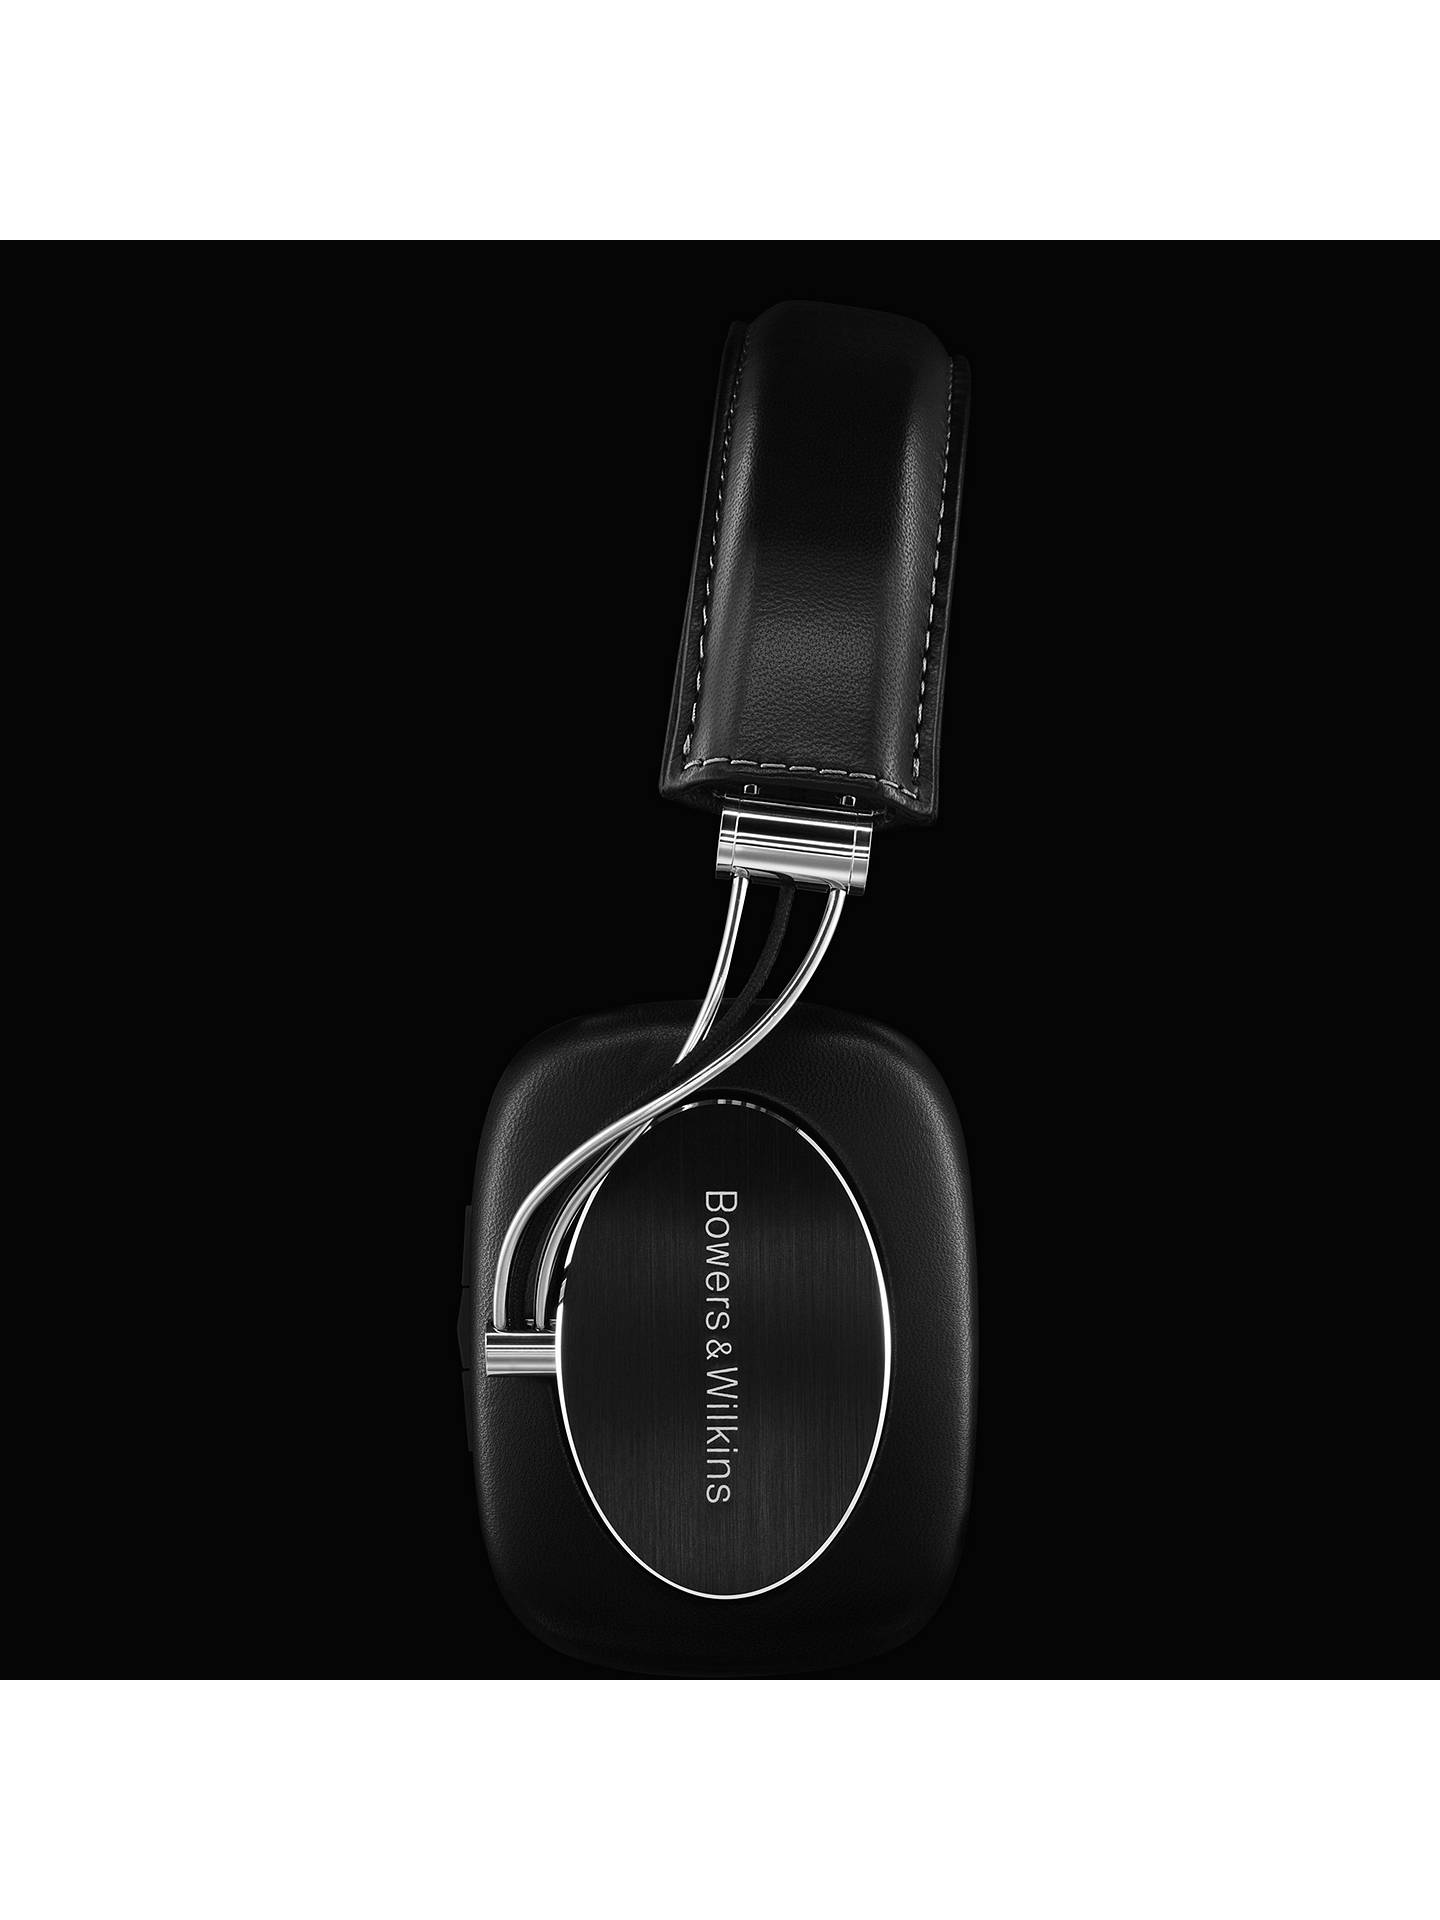 Buy Bowers & Wilkins P7 Wireless Over Ear Headphones with Mic/Remote, Black Online at johnlewis.com